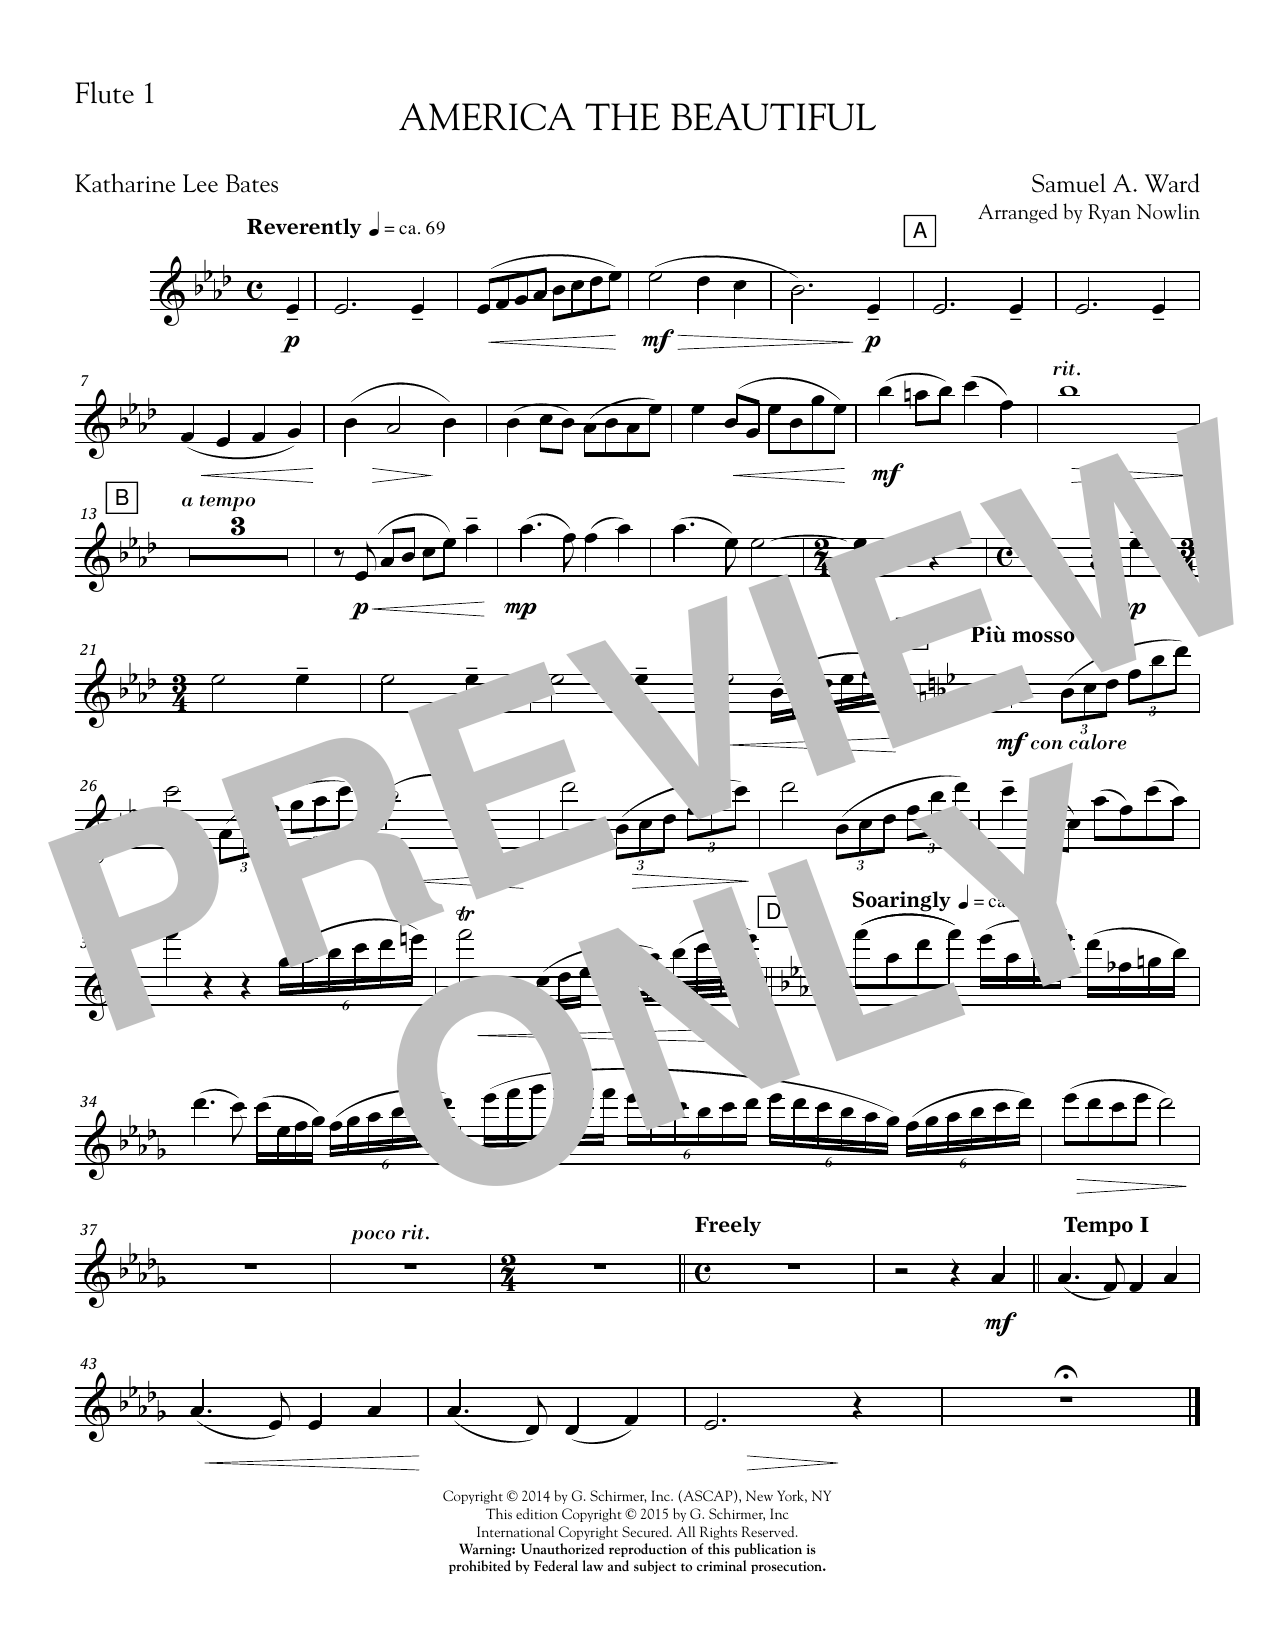 America, the Beautiful - Flute 1 Sheet Music